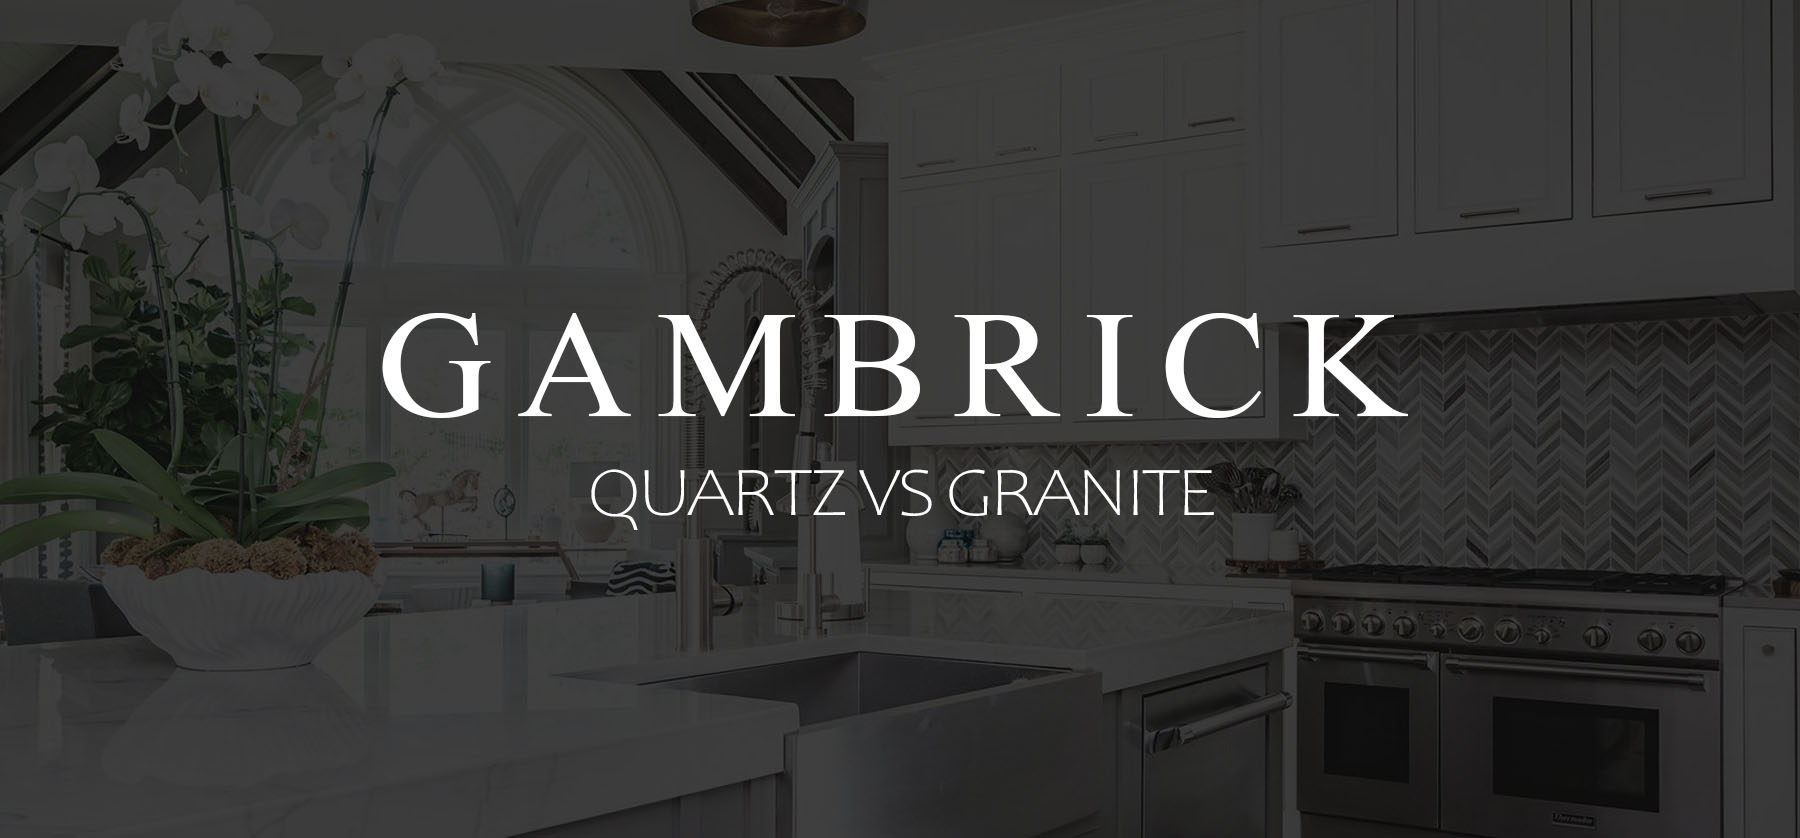 Quartz vs granite banner picture